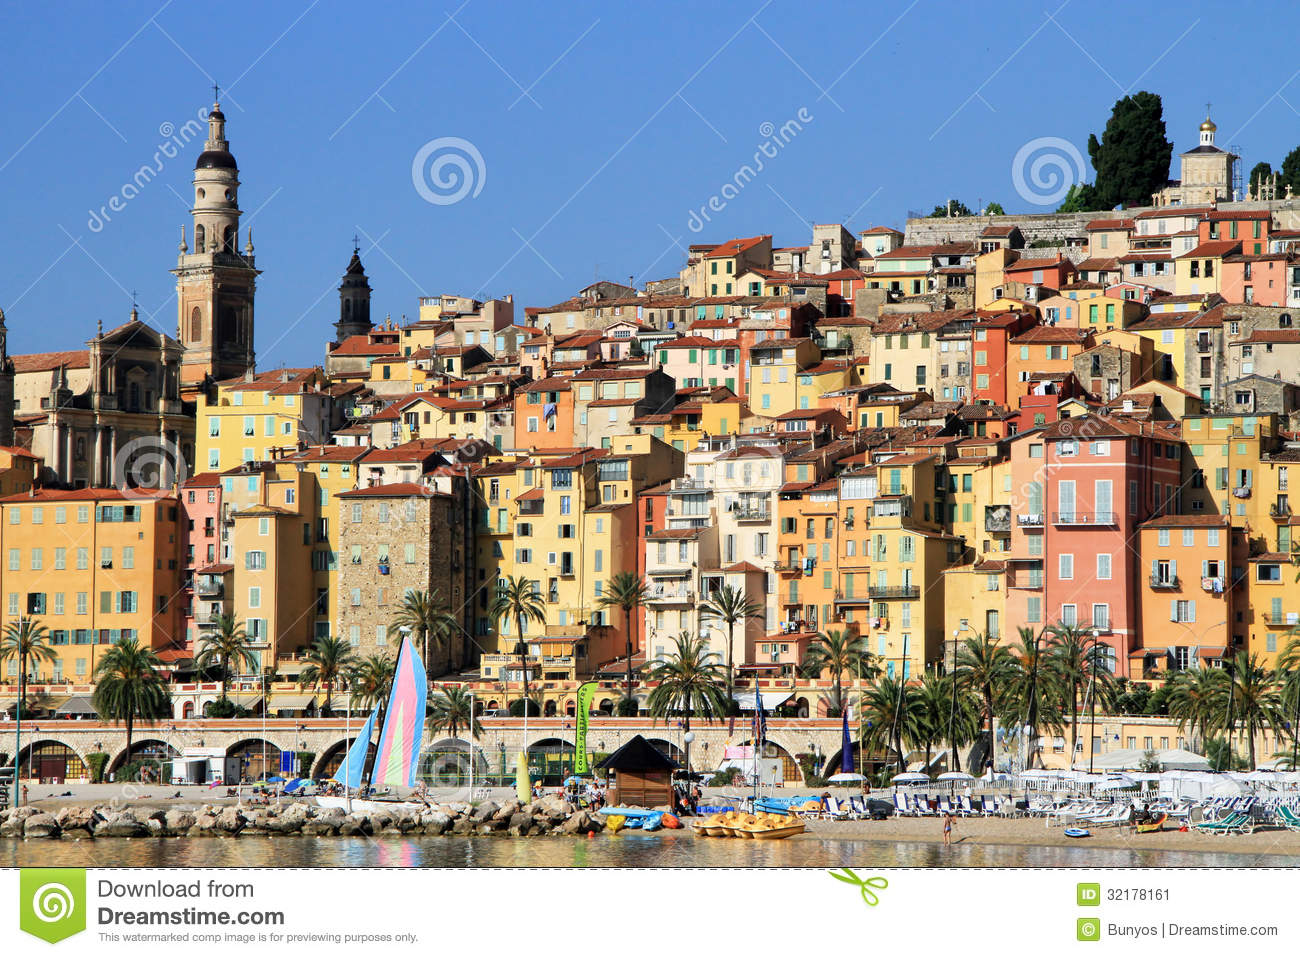 Provence Village Of Menton On The French Riviera In The